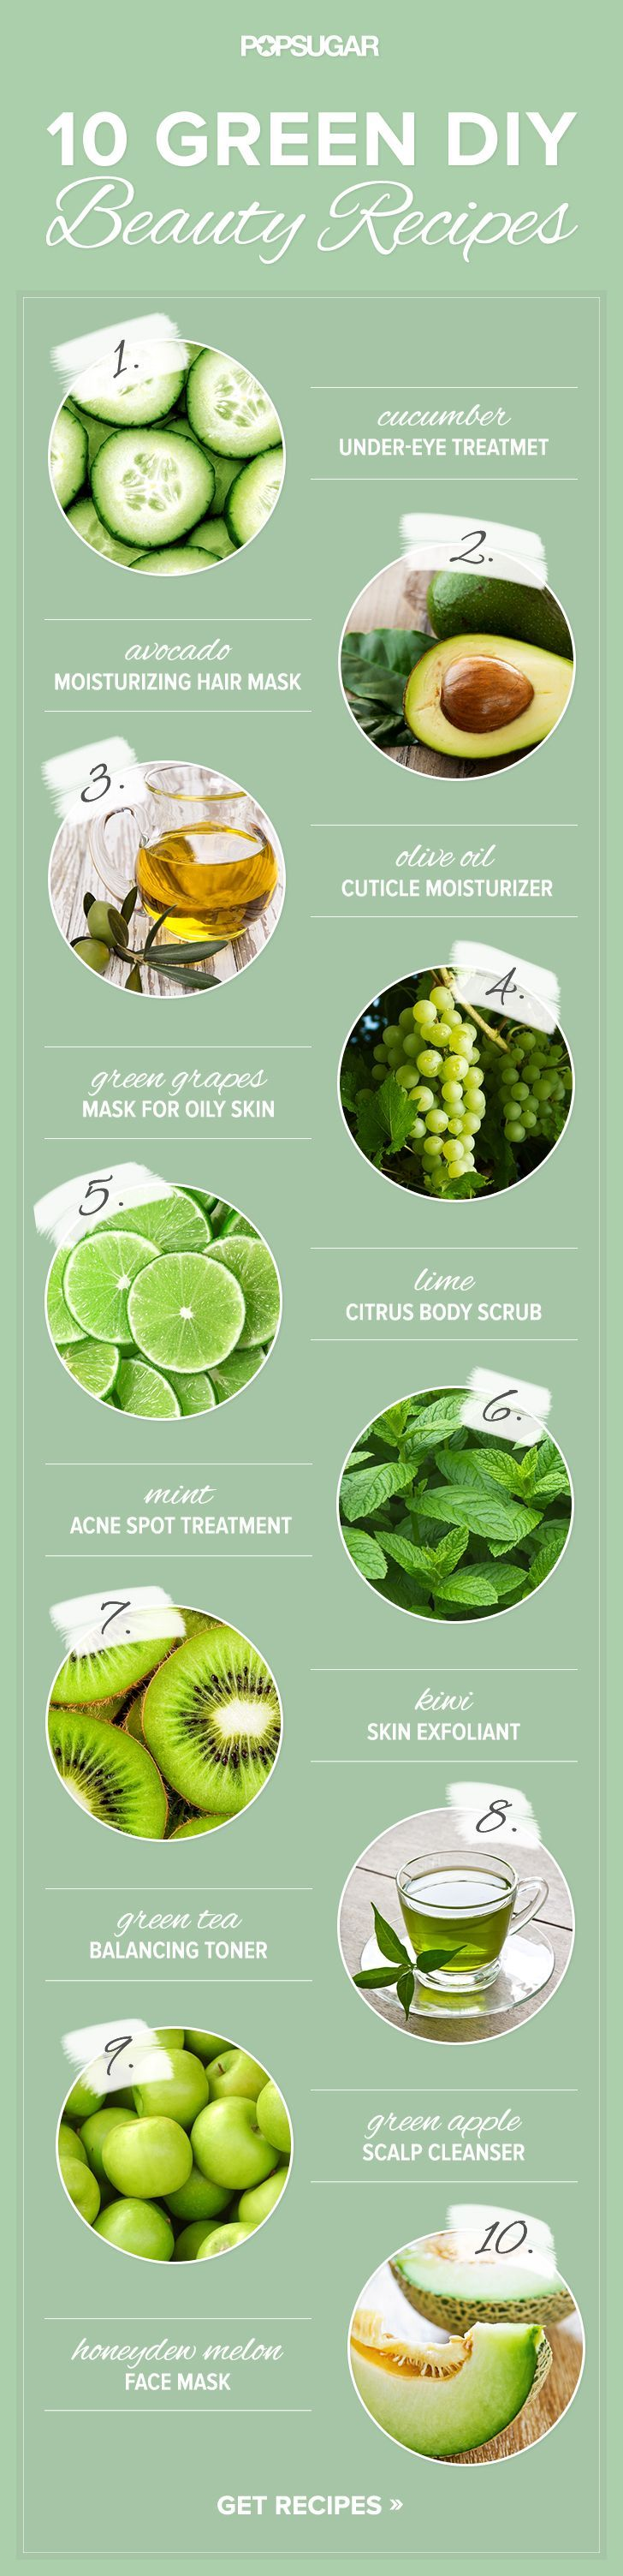 10 Beauty DIY Recipes That are Green in Every Way. 10 beauty recipes that harness the skin-saving characteristics of our favorite foods. But in addition to being great for your complexion and the environment, these at-home mixers are also green. Really Green!